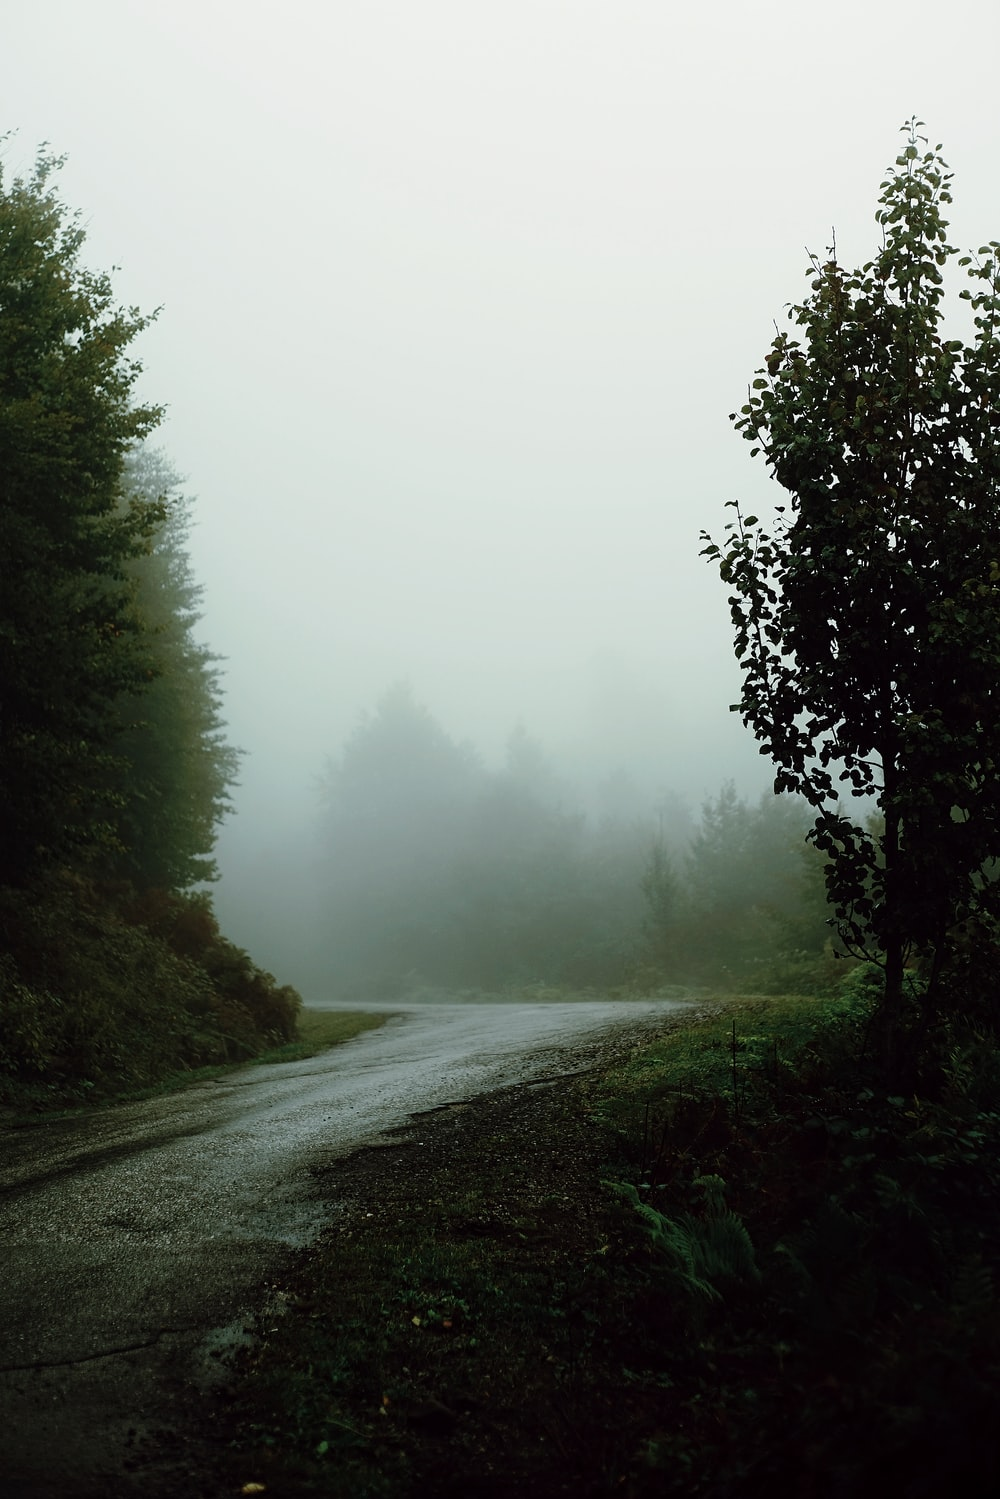 foggy street with trees on sides